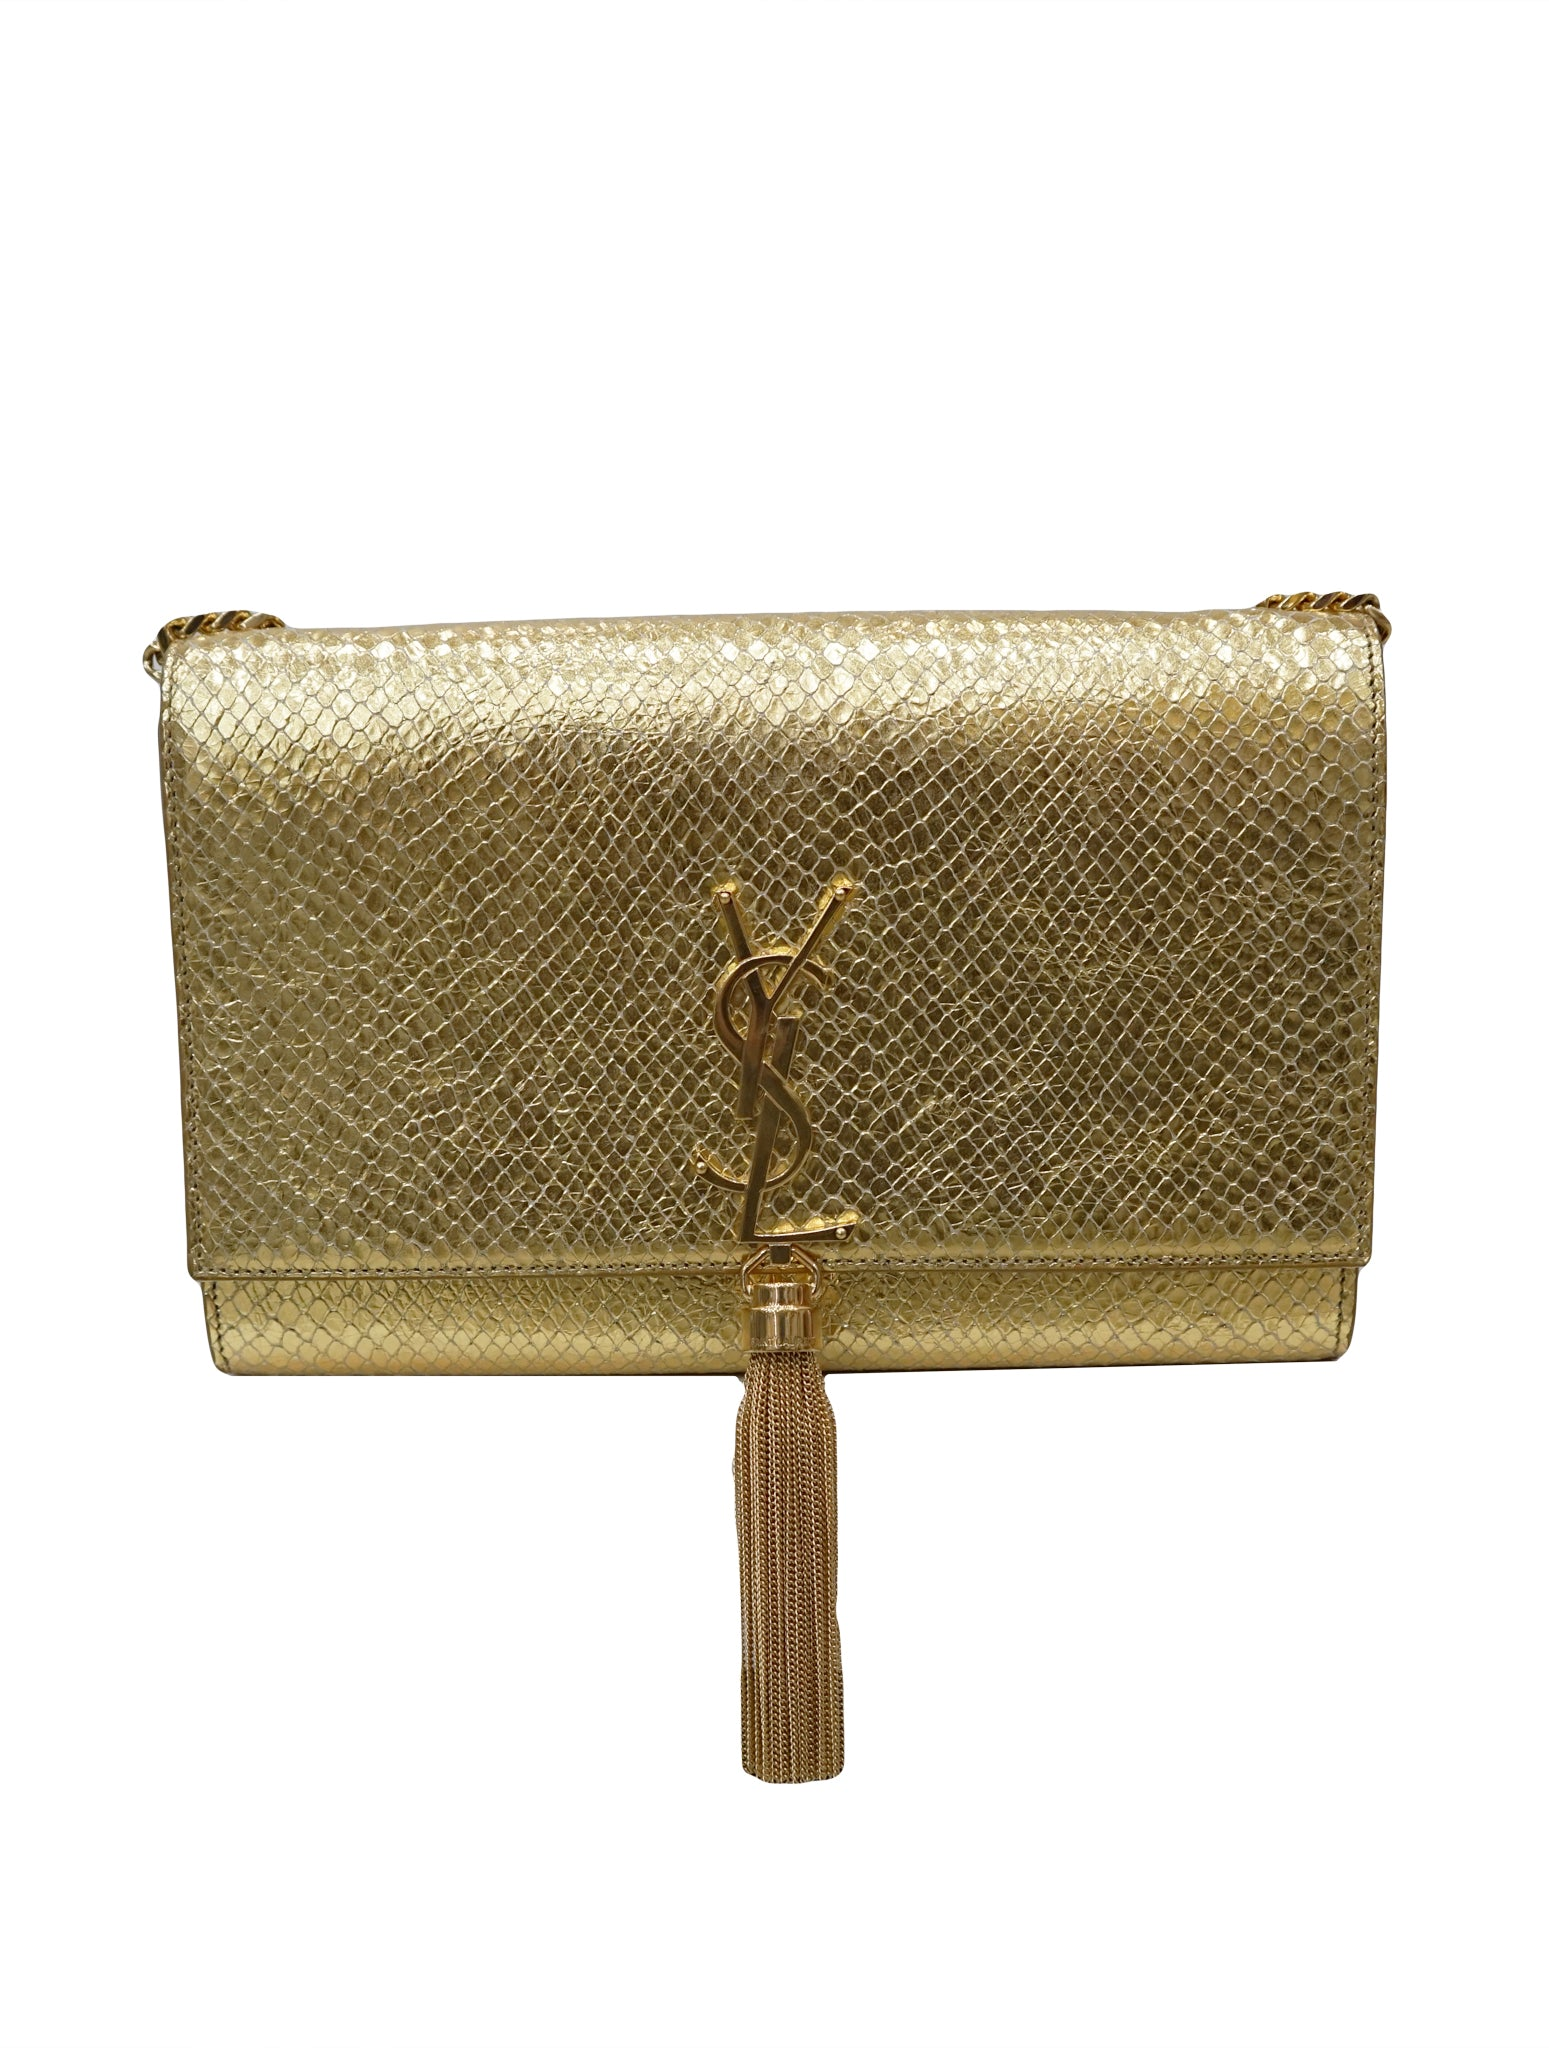 GOLD PYTHON EMBOSSED LEATHER TASSEL BAG